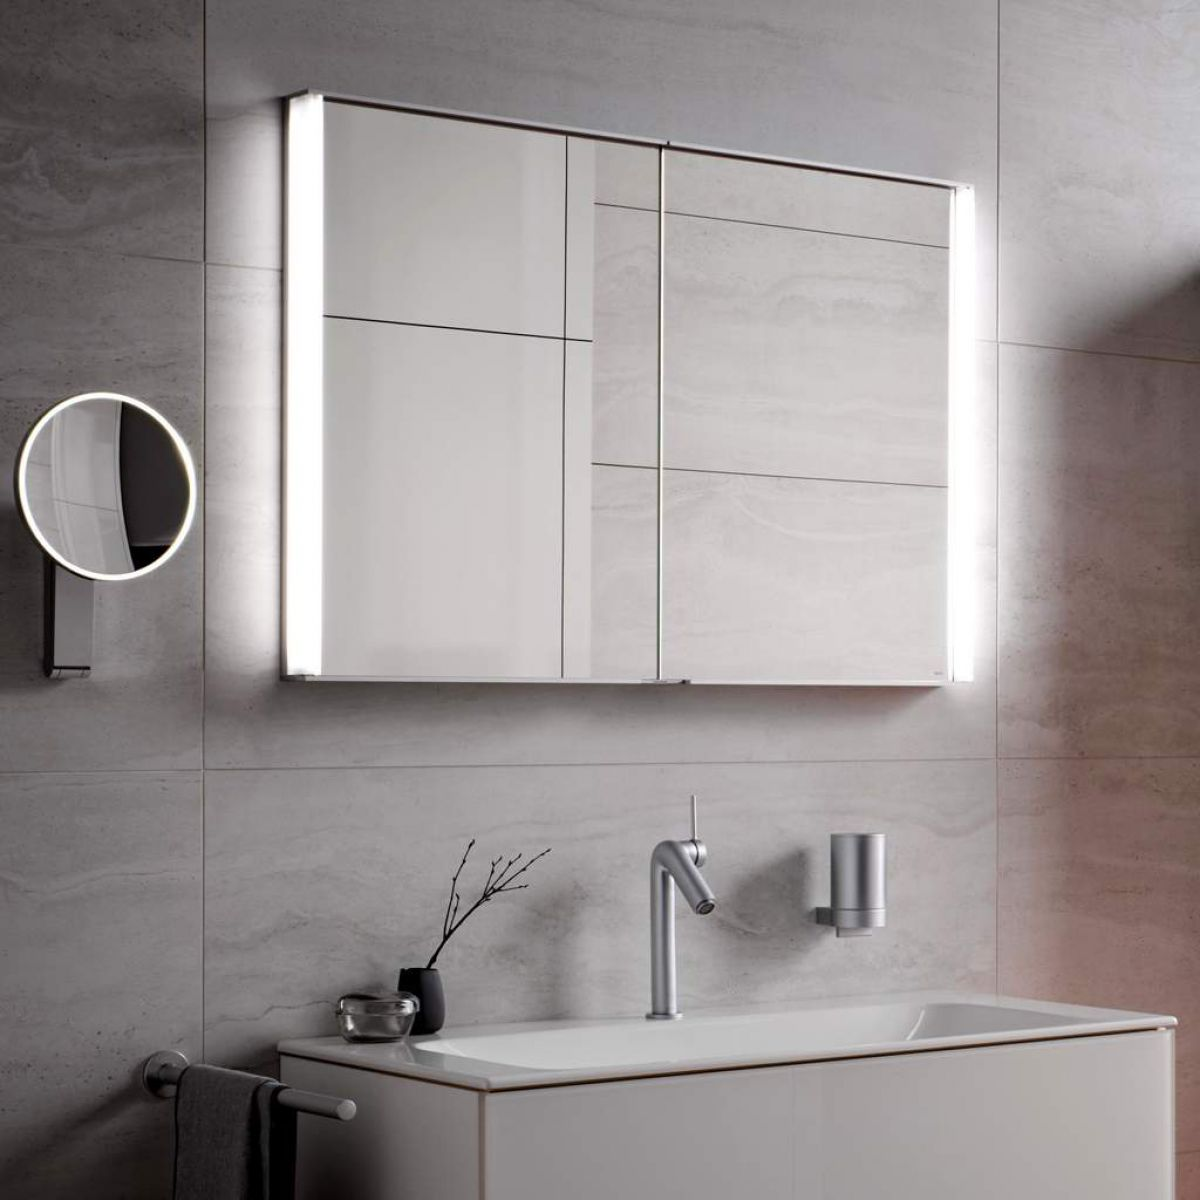 Terrific Keuco Royal Match Semi Recessed Mirror Cabinets Interior Design Ideas Gentotryabchikinfo